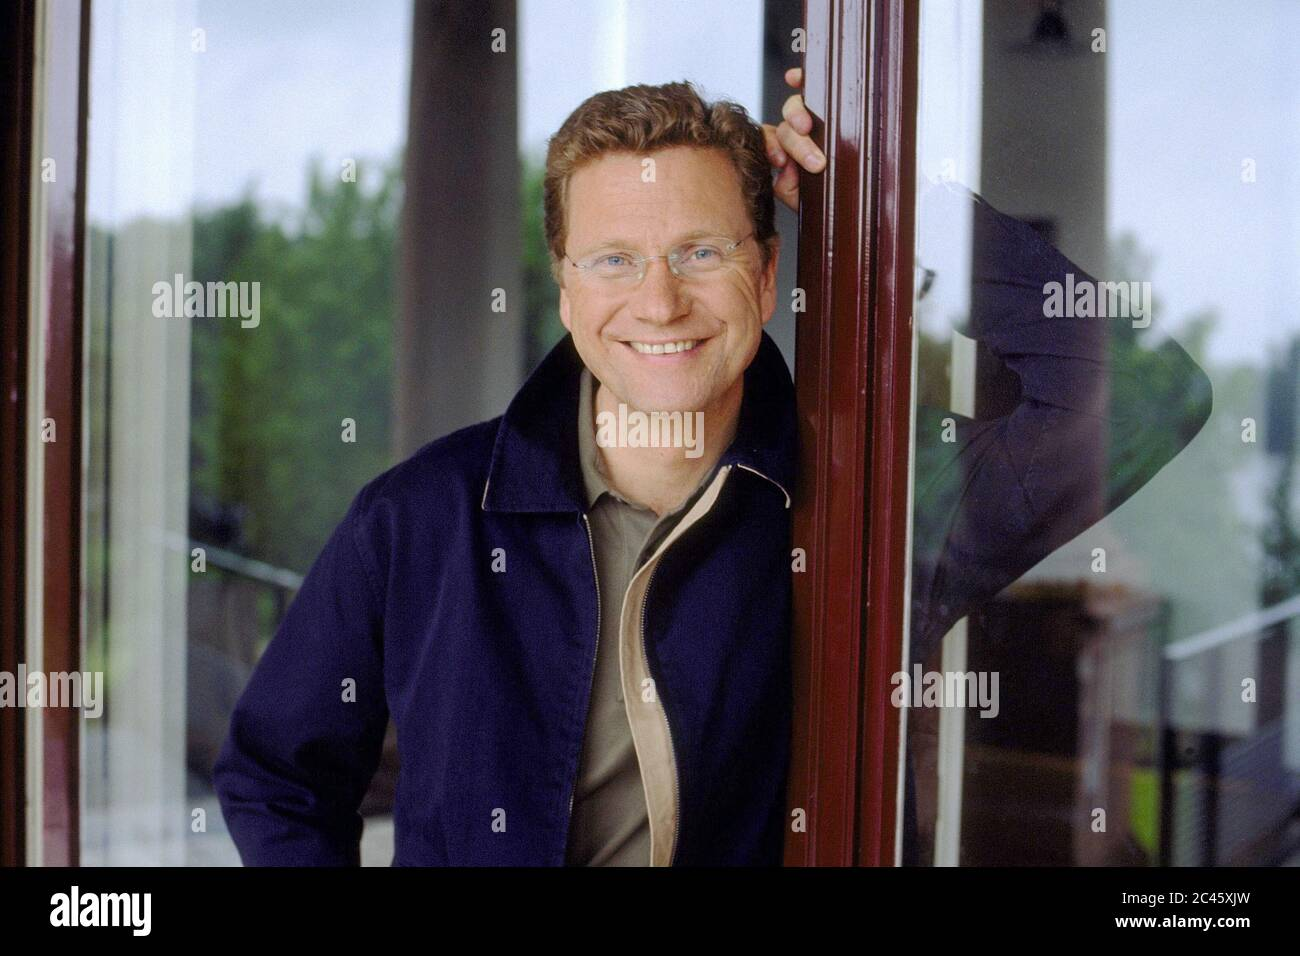 Guido Westerwelle - General Secretary of the FDP - Germany Stock Photo